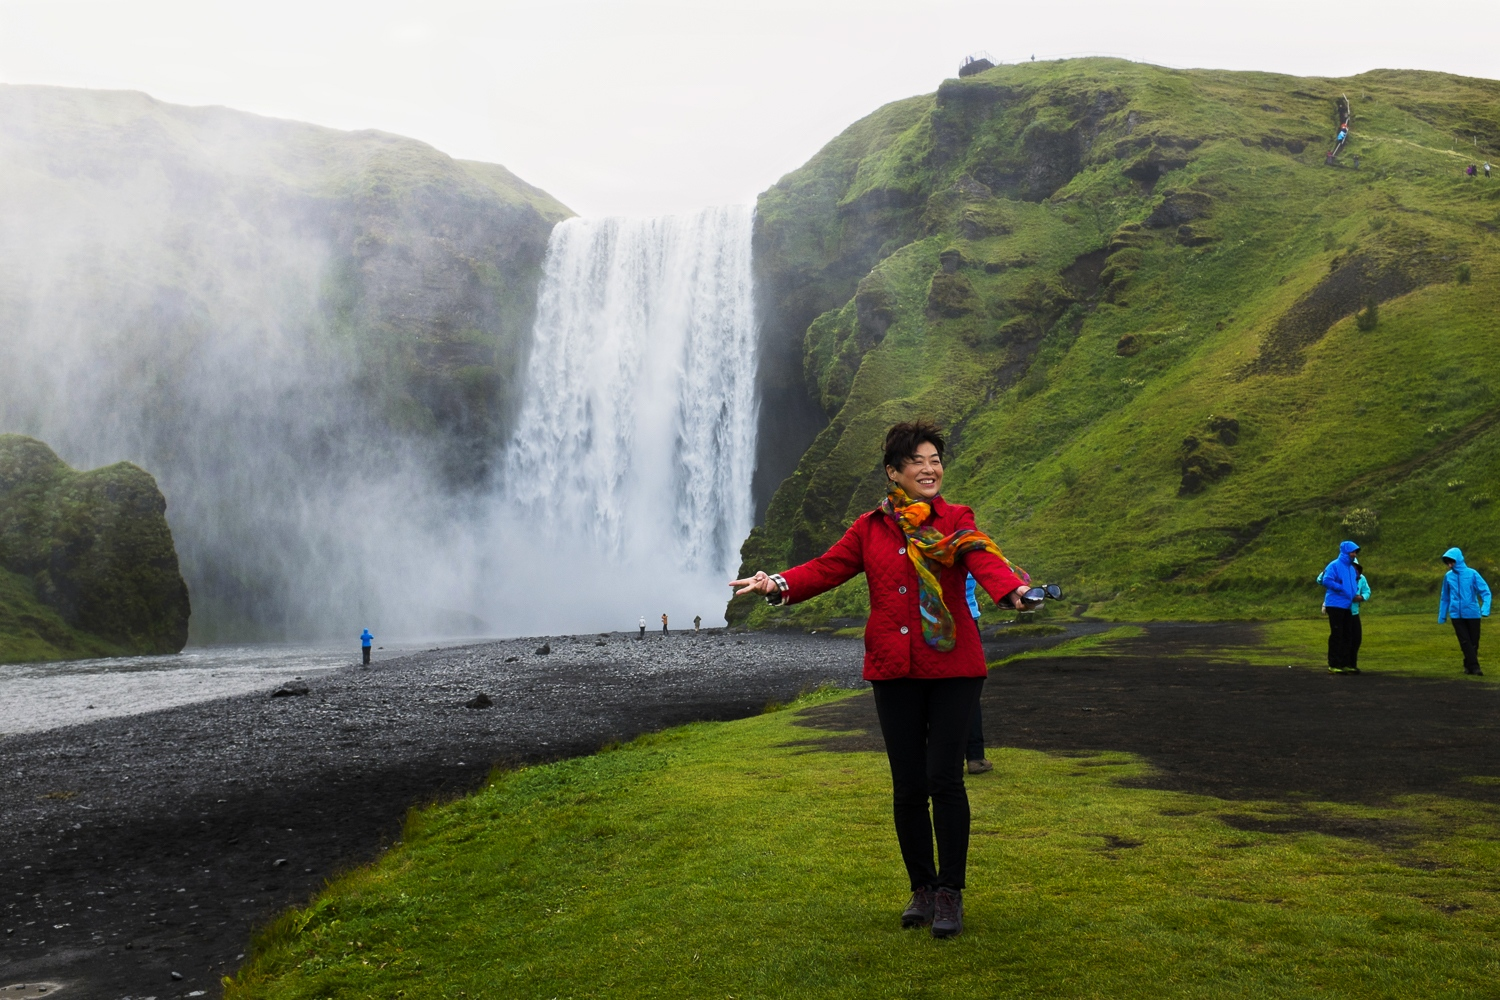 A Chinese tourist at Skógarfoss.